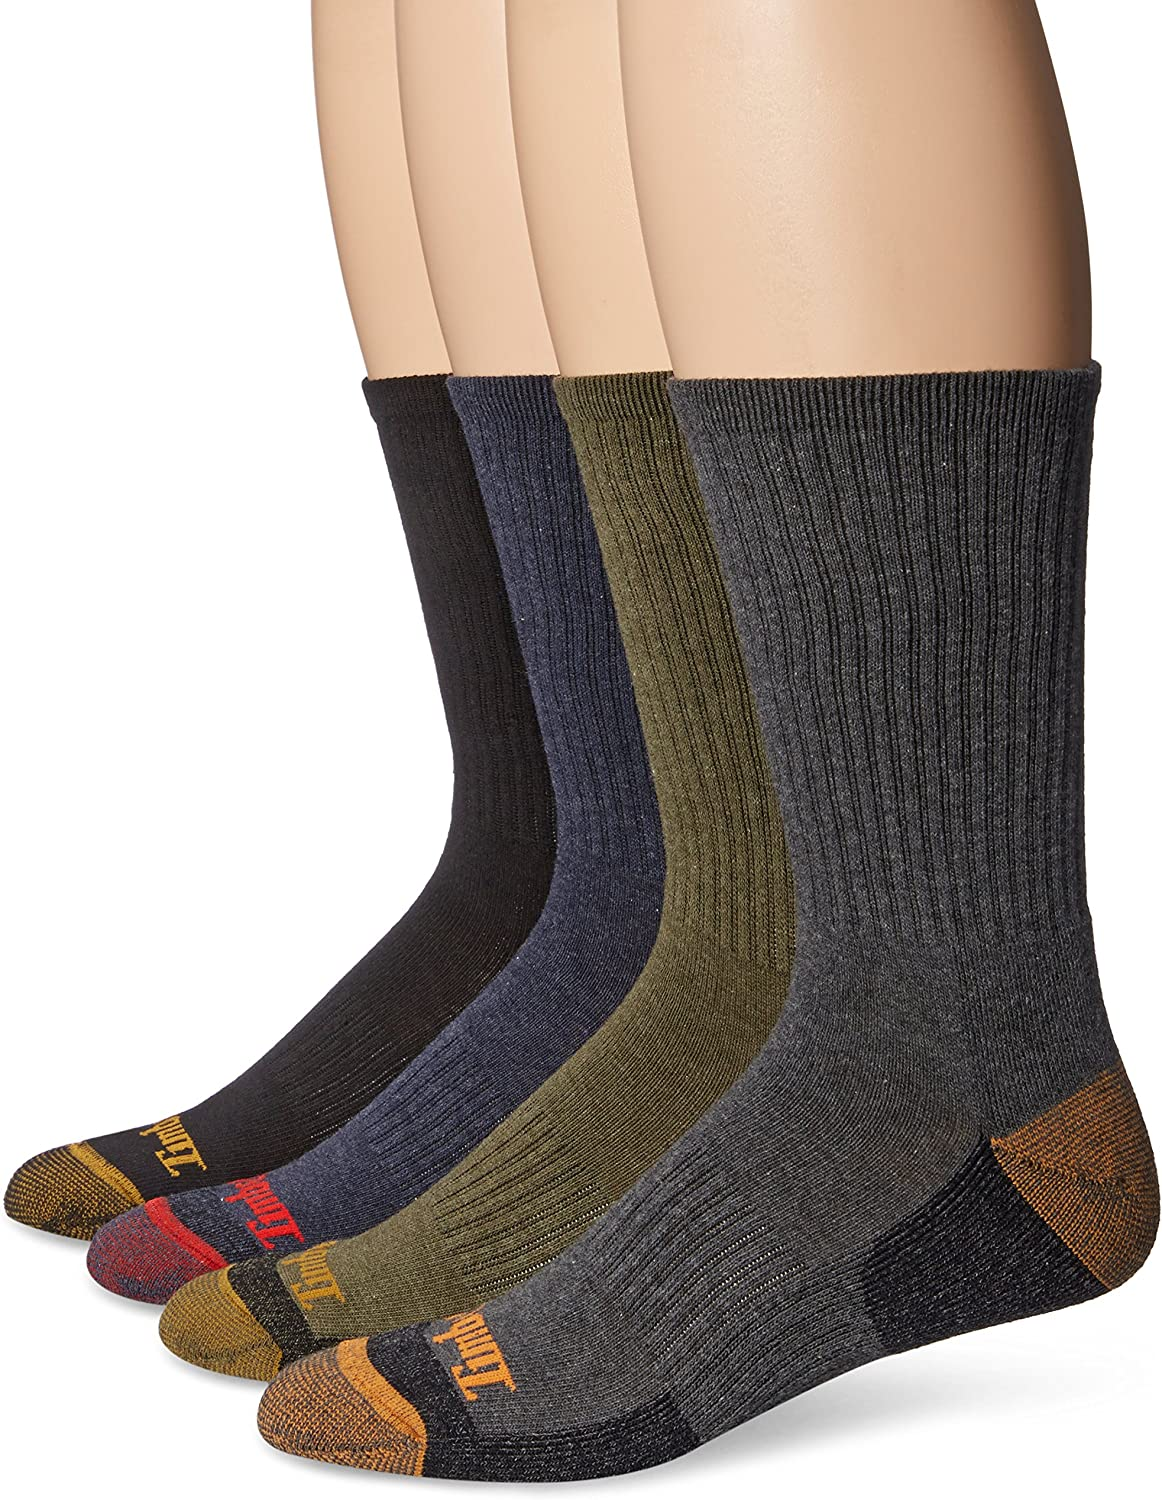 Details about  /NWT Men/'s Tommy Bahama 4 Pack Casual Crew Dress Socks